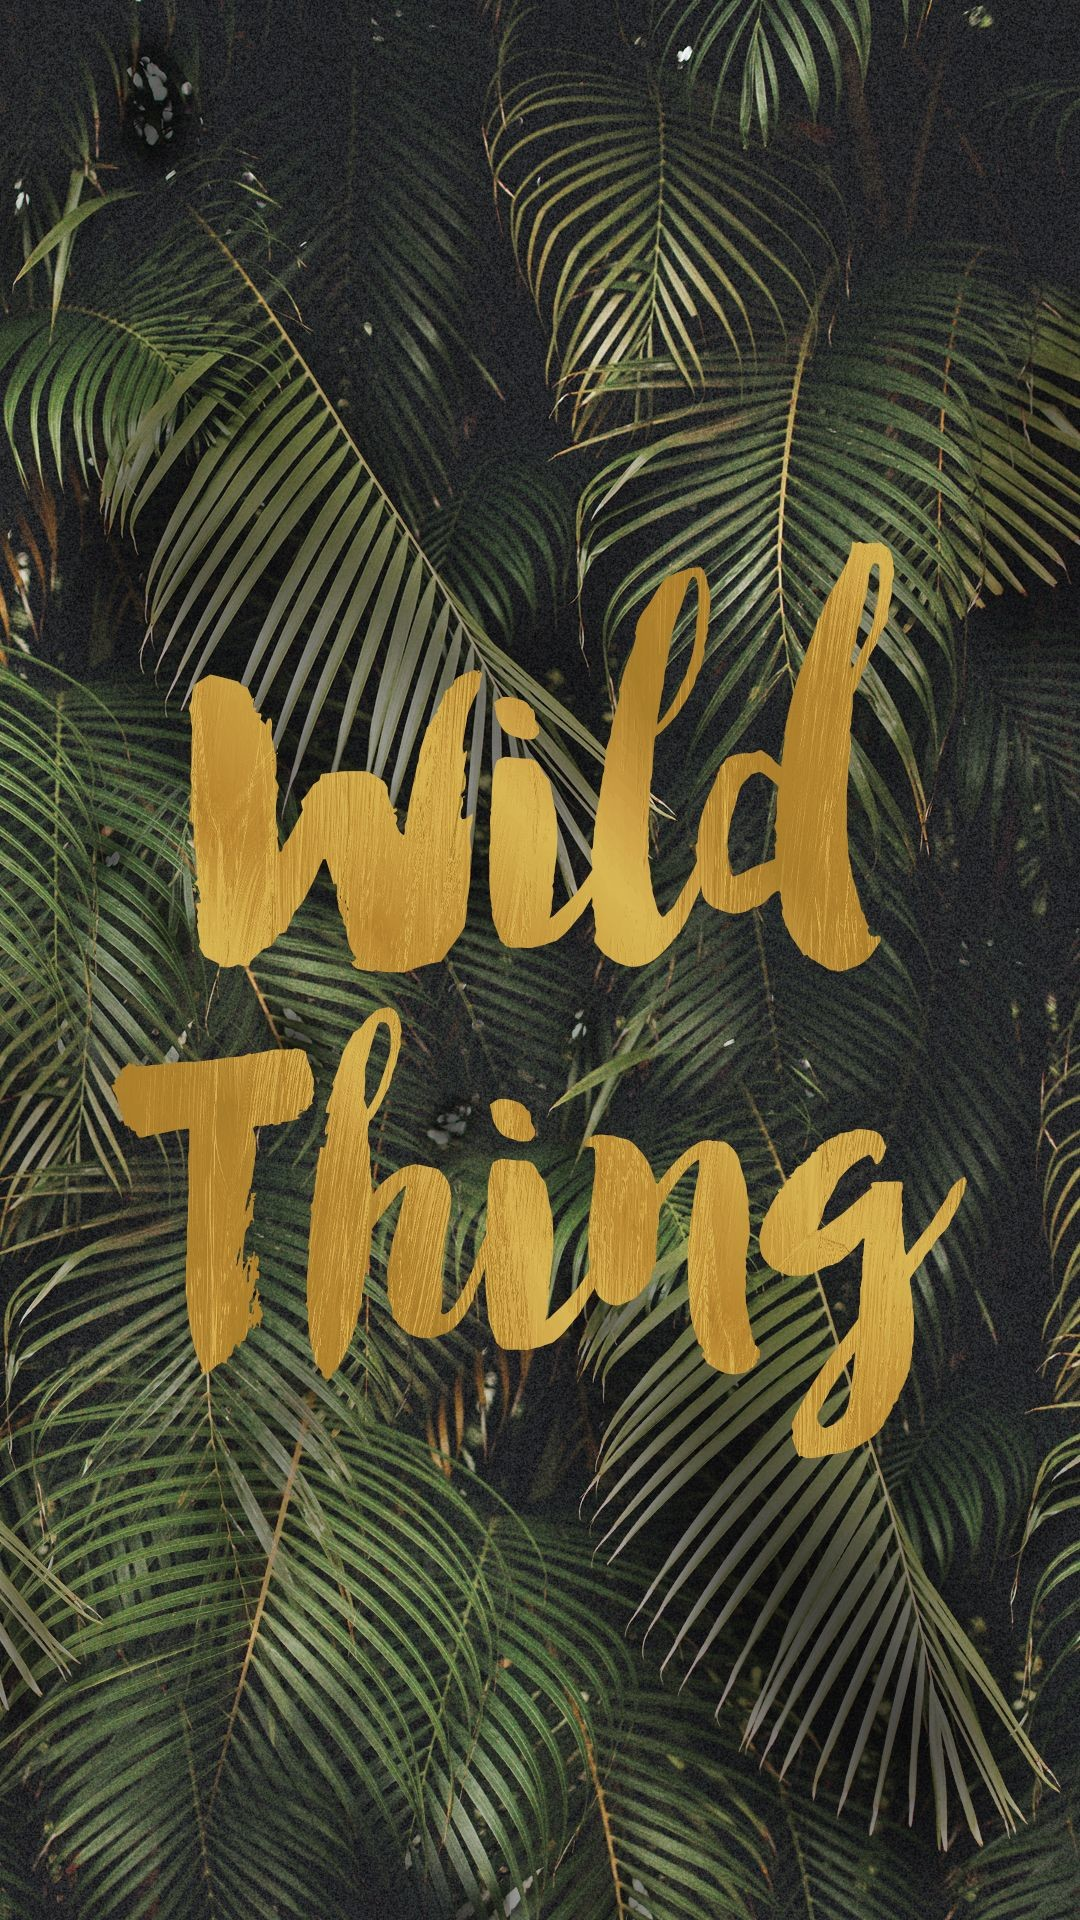 Res: 1080x1920, wild thing